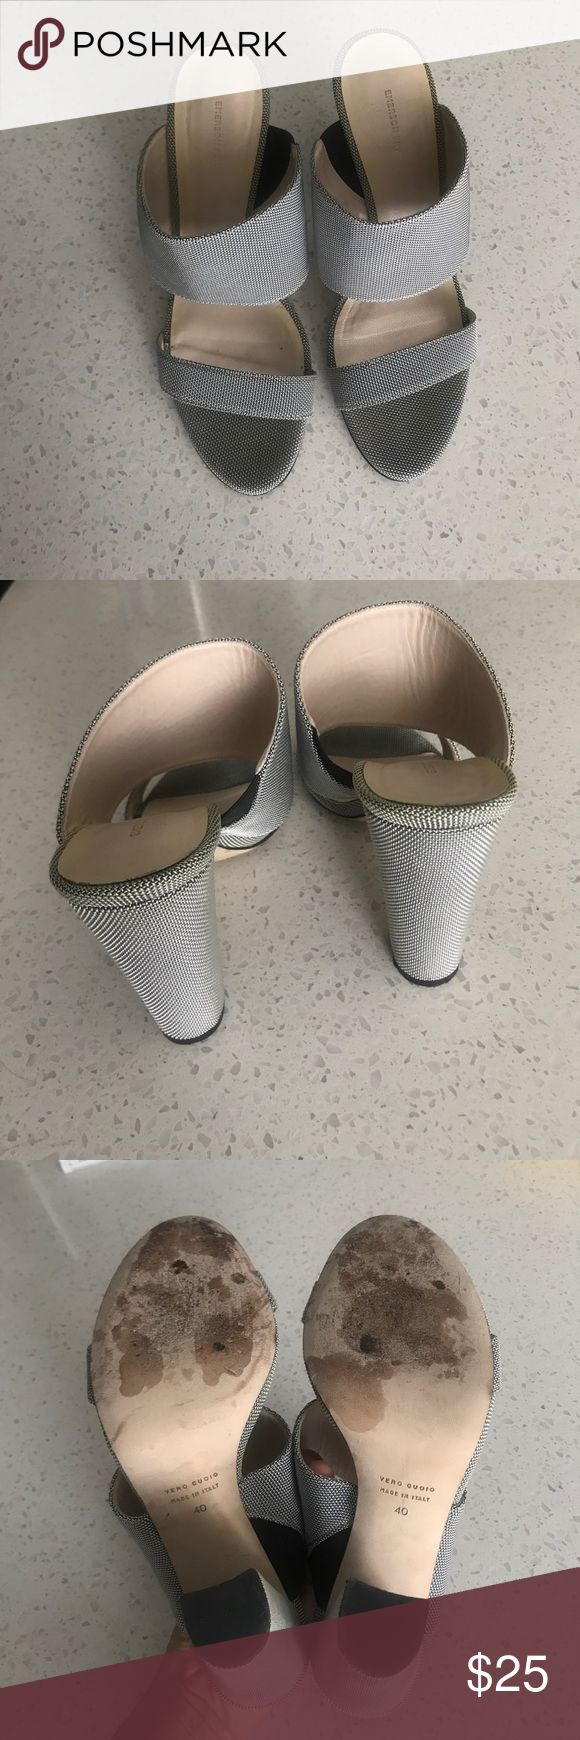 "Emerson Fry heels, as 40/9/9.5 Beautiful gray nylon heels. Worn a few times and are in great condition. The combination of the larger front strap and smaller toe strap hold your foot in nicely, without sliding out. 4"", please let me know if you have any questions! Emerson Fry Shoes Heels"